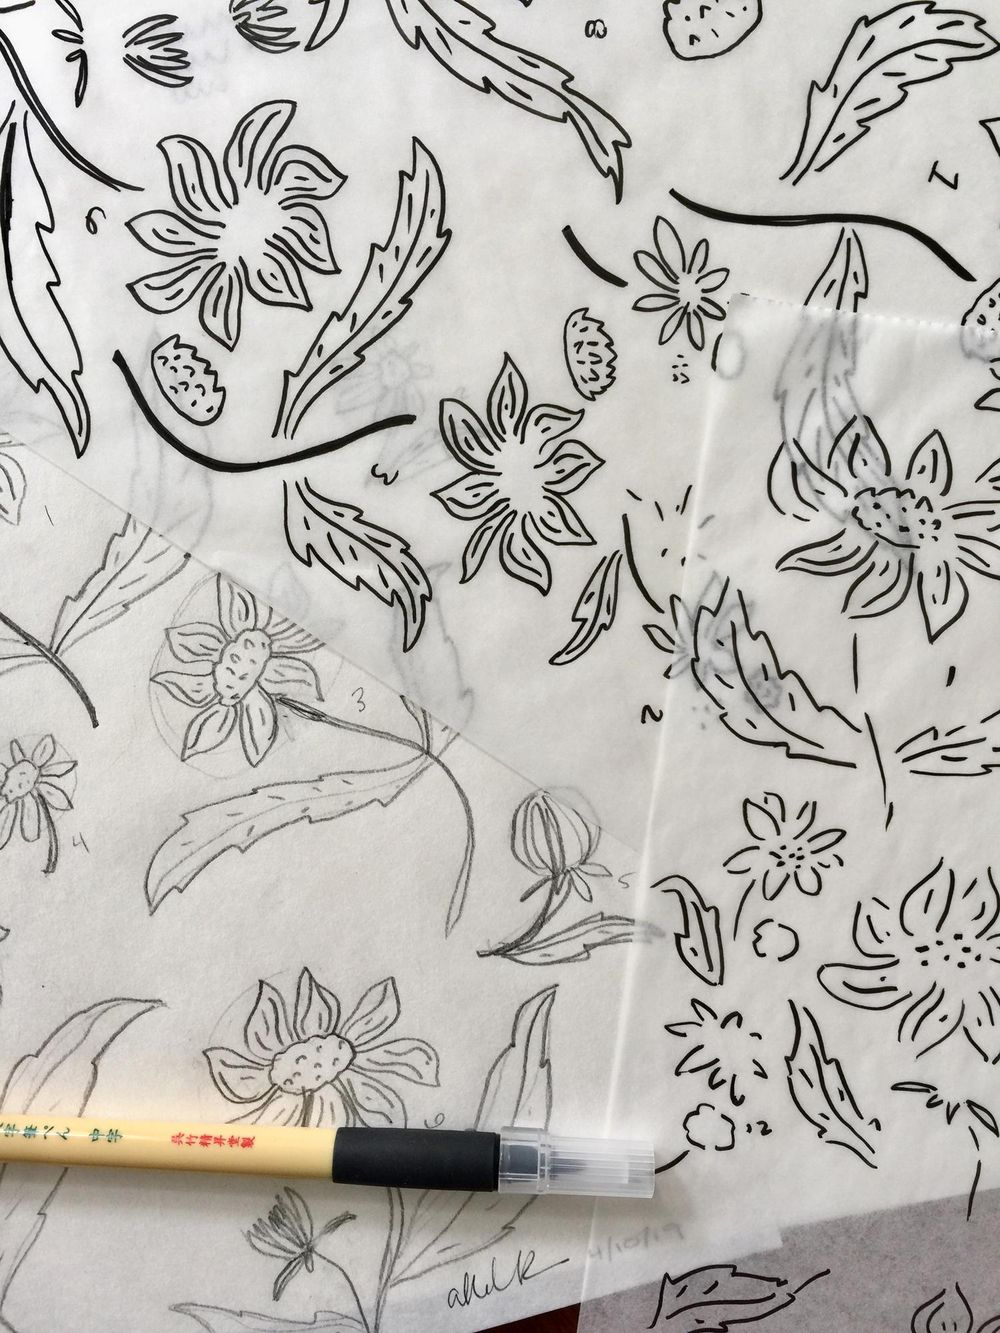 Sketching Flowers - image 1 - student project